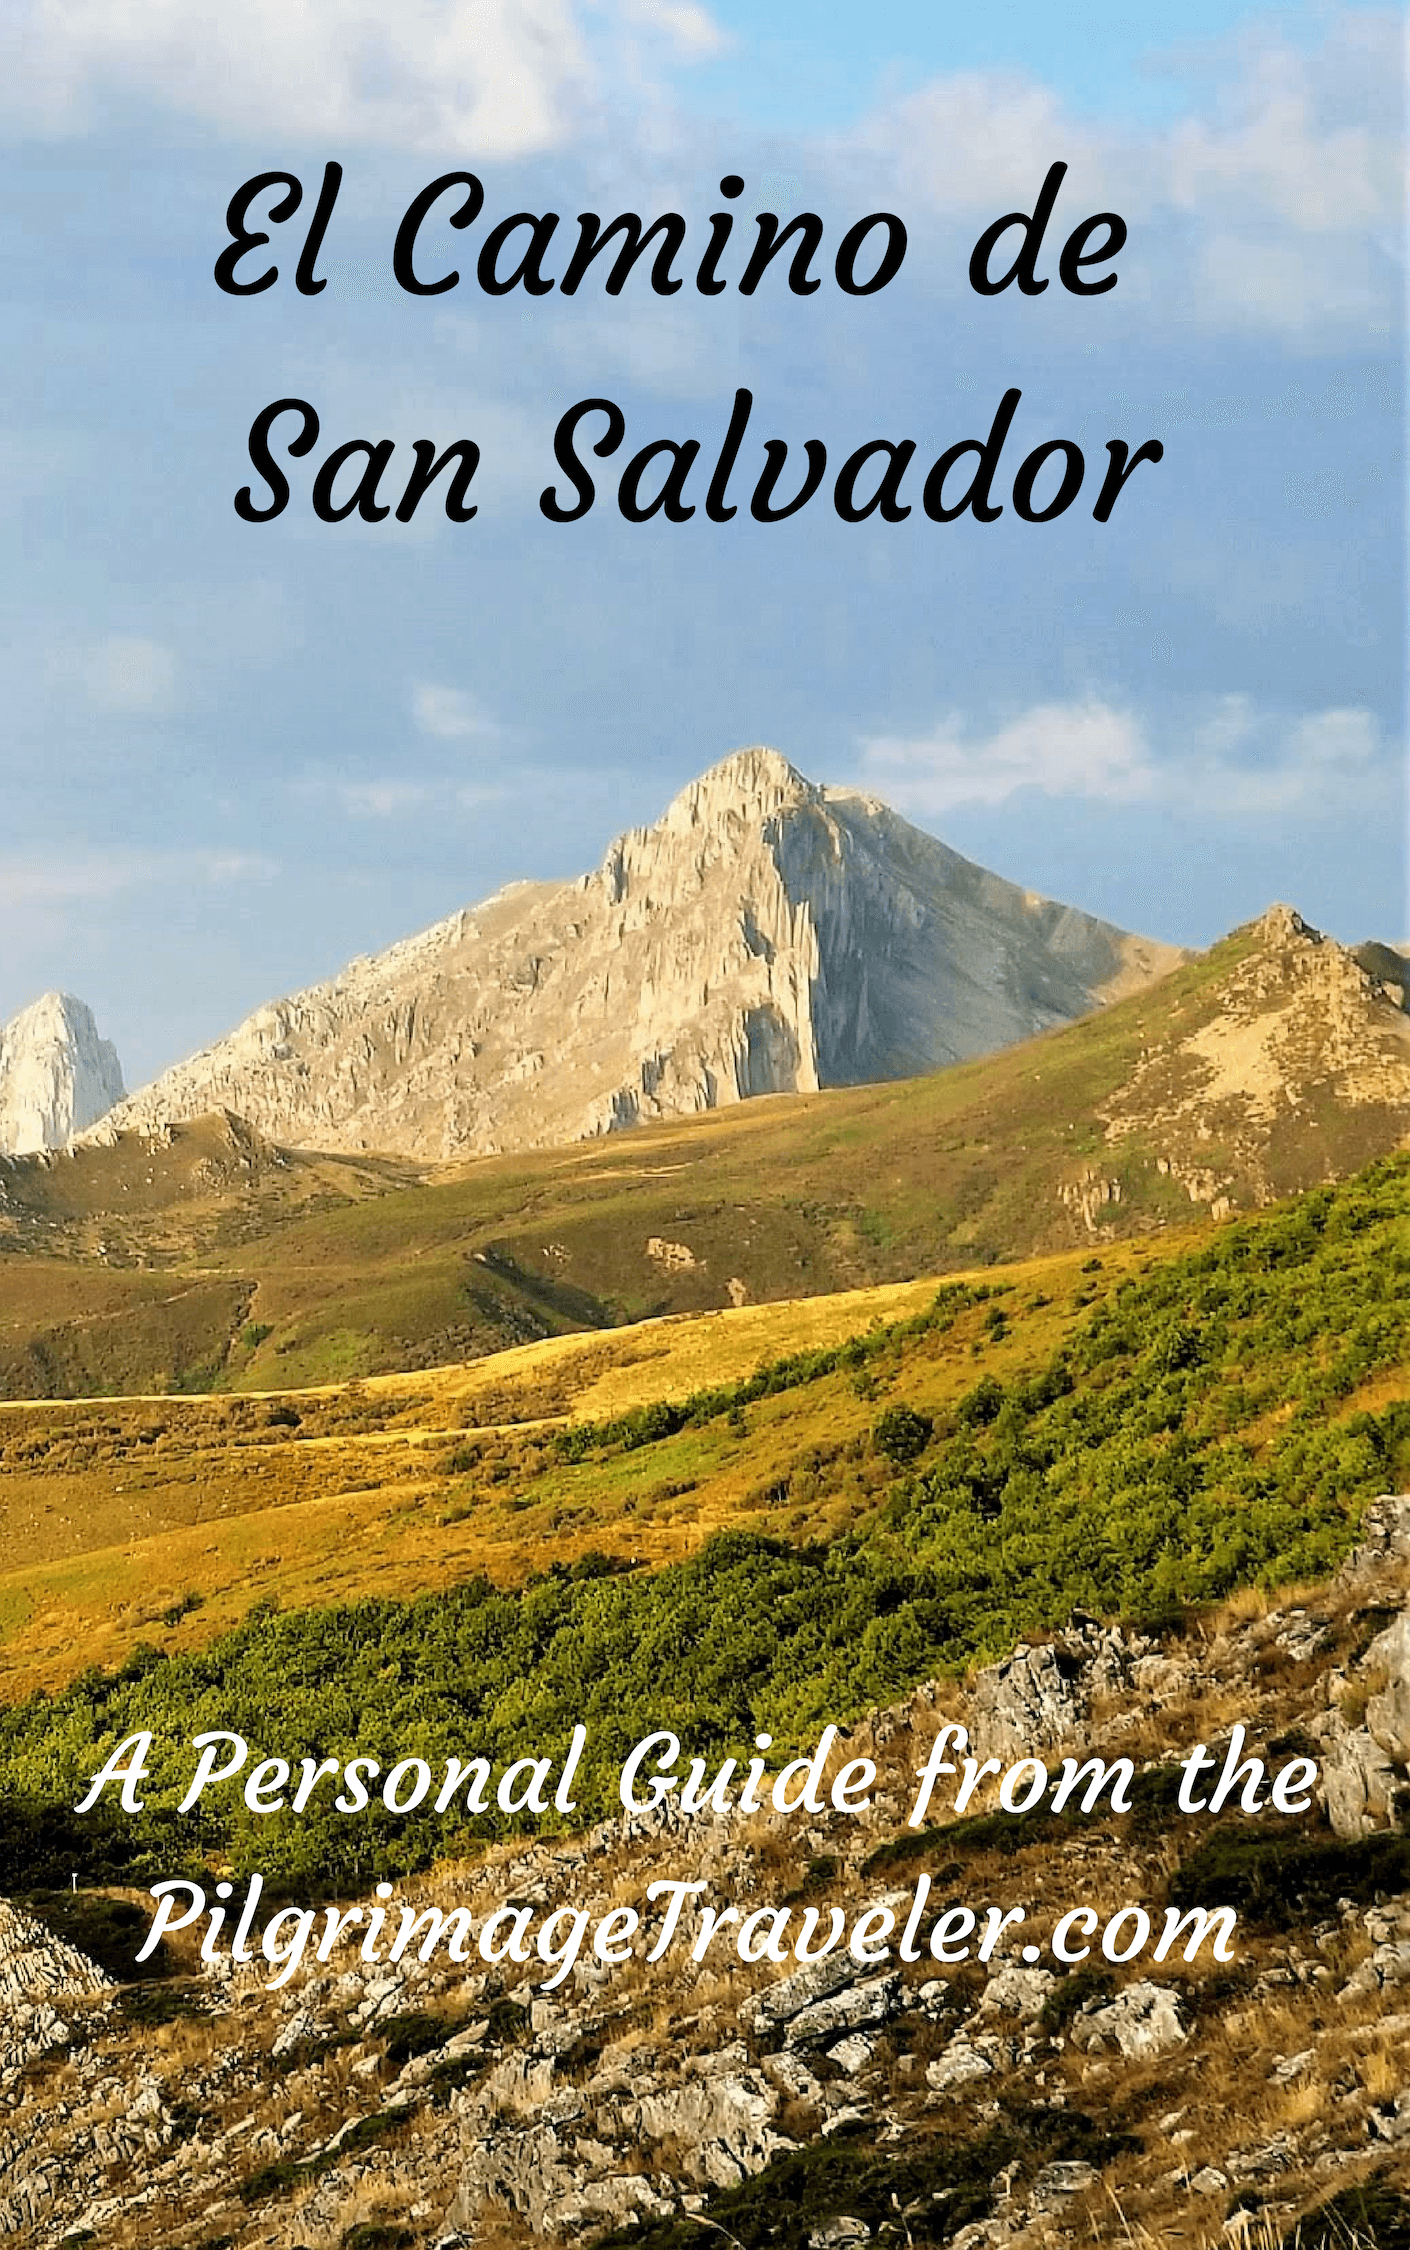 Camino de San Salvador Digital EBook Guide, Copyright 2019